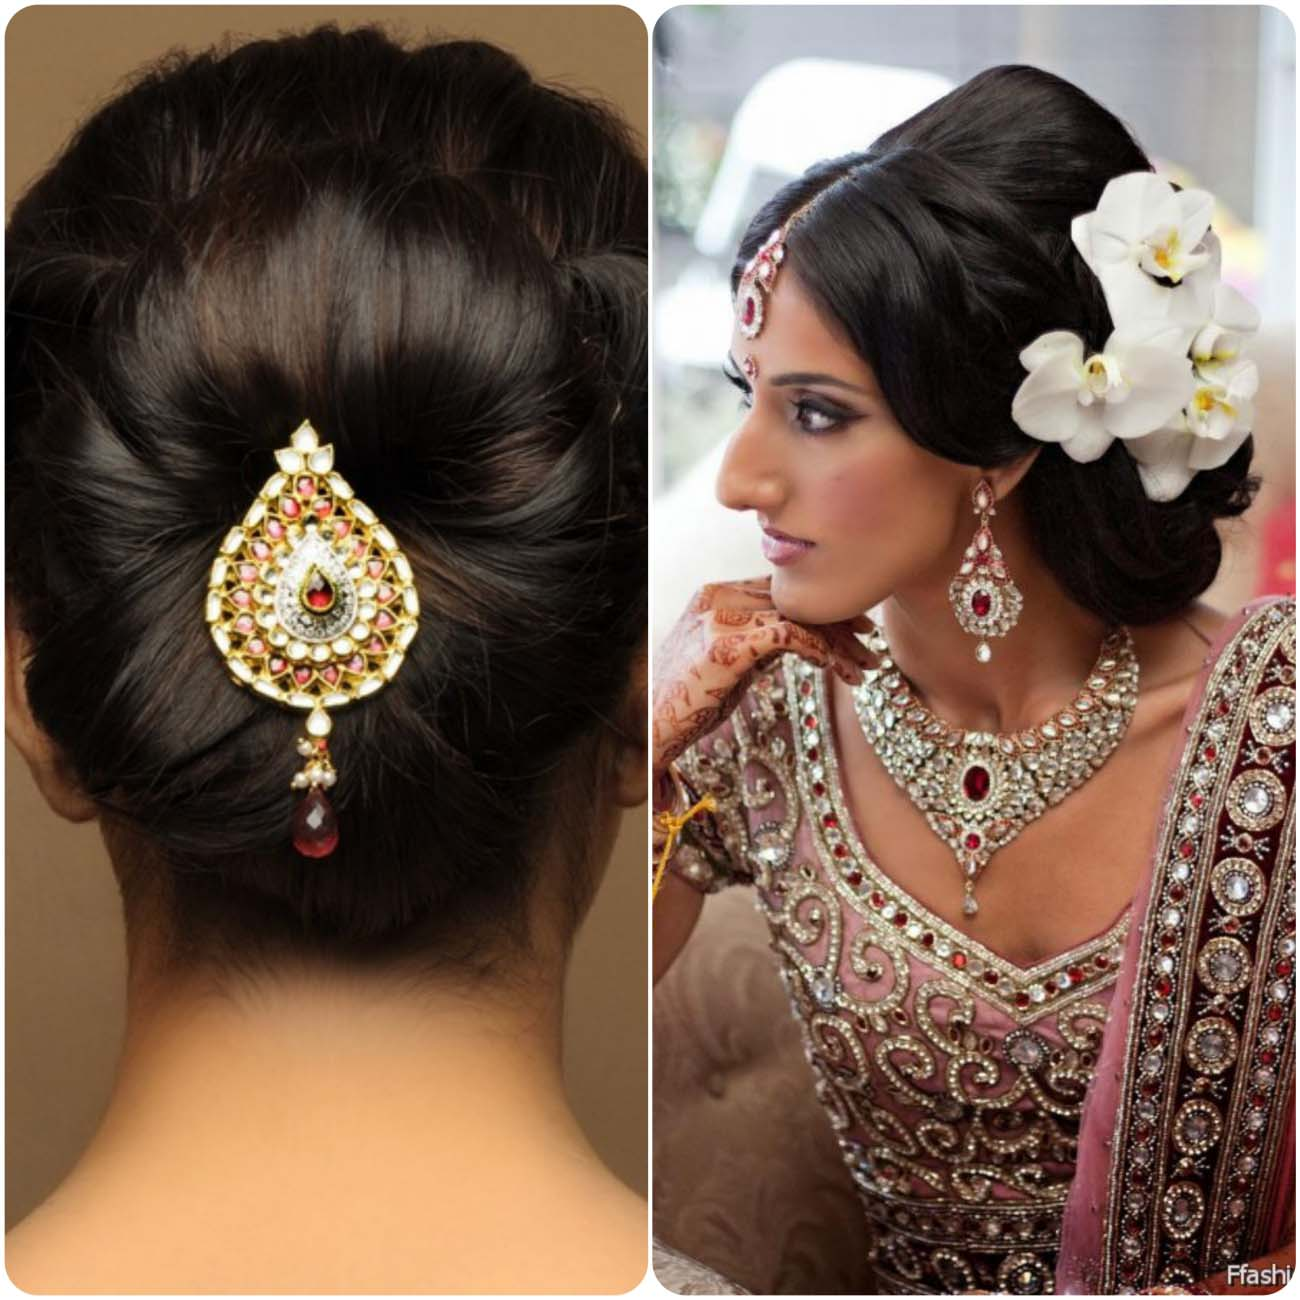 Wedding Hair Style Video: Women Fashion Girls Dress: Indian Native Wedding Hair